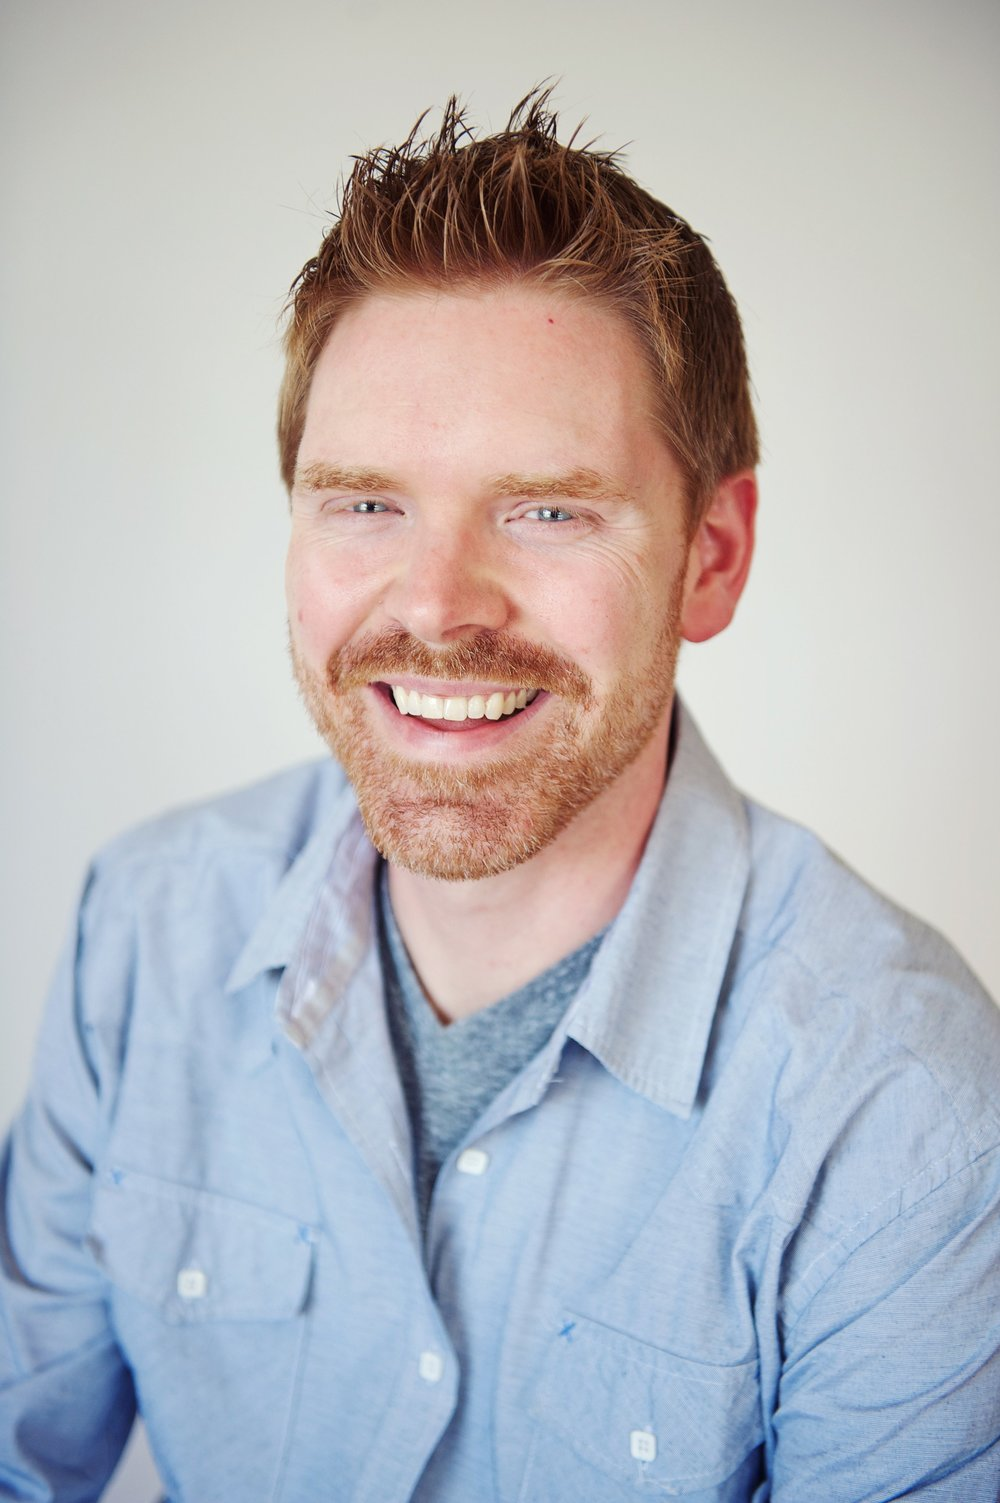 """""""My passion is creating simple processes that amplify your team's unique talents. You get better results when people find deeper meaning in their work."""" Service Designer Josh Brammer"""